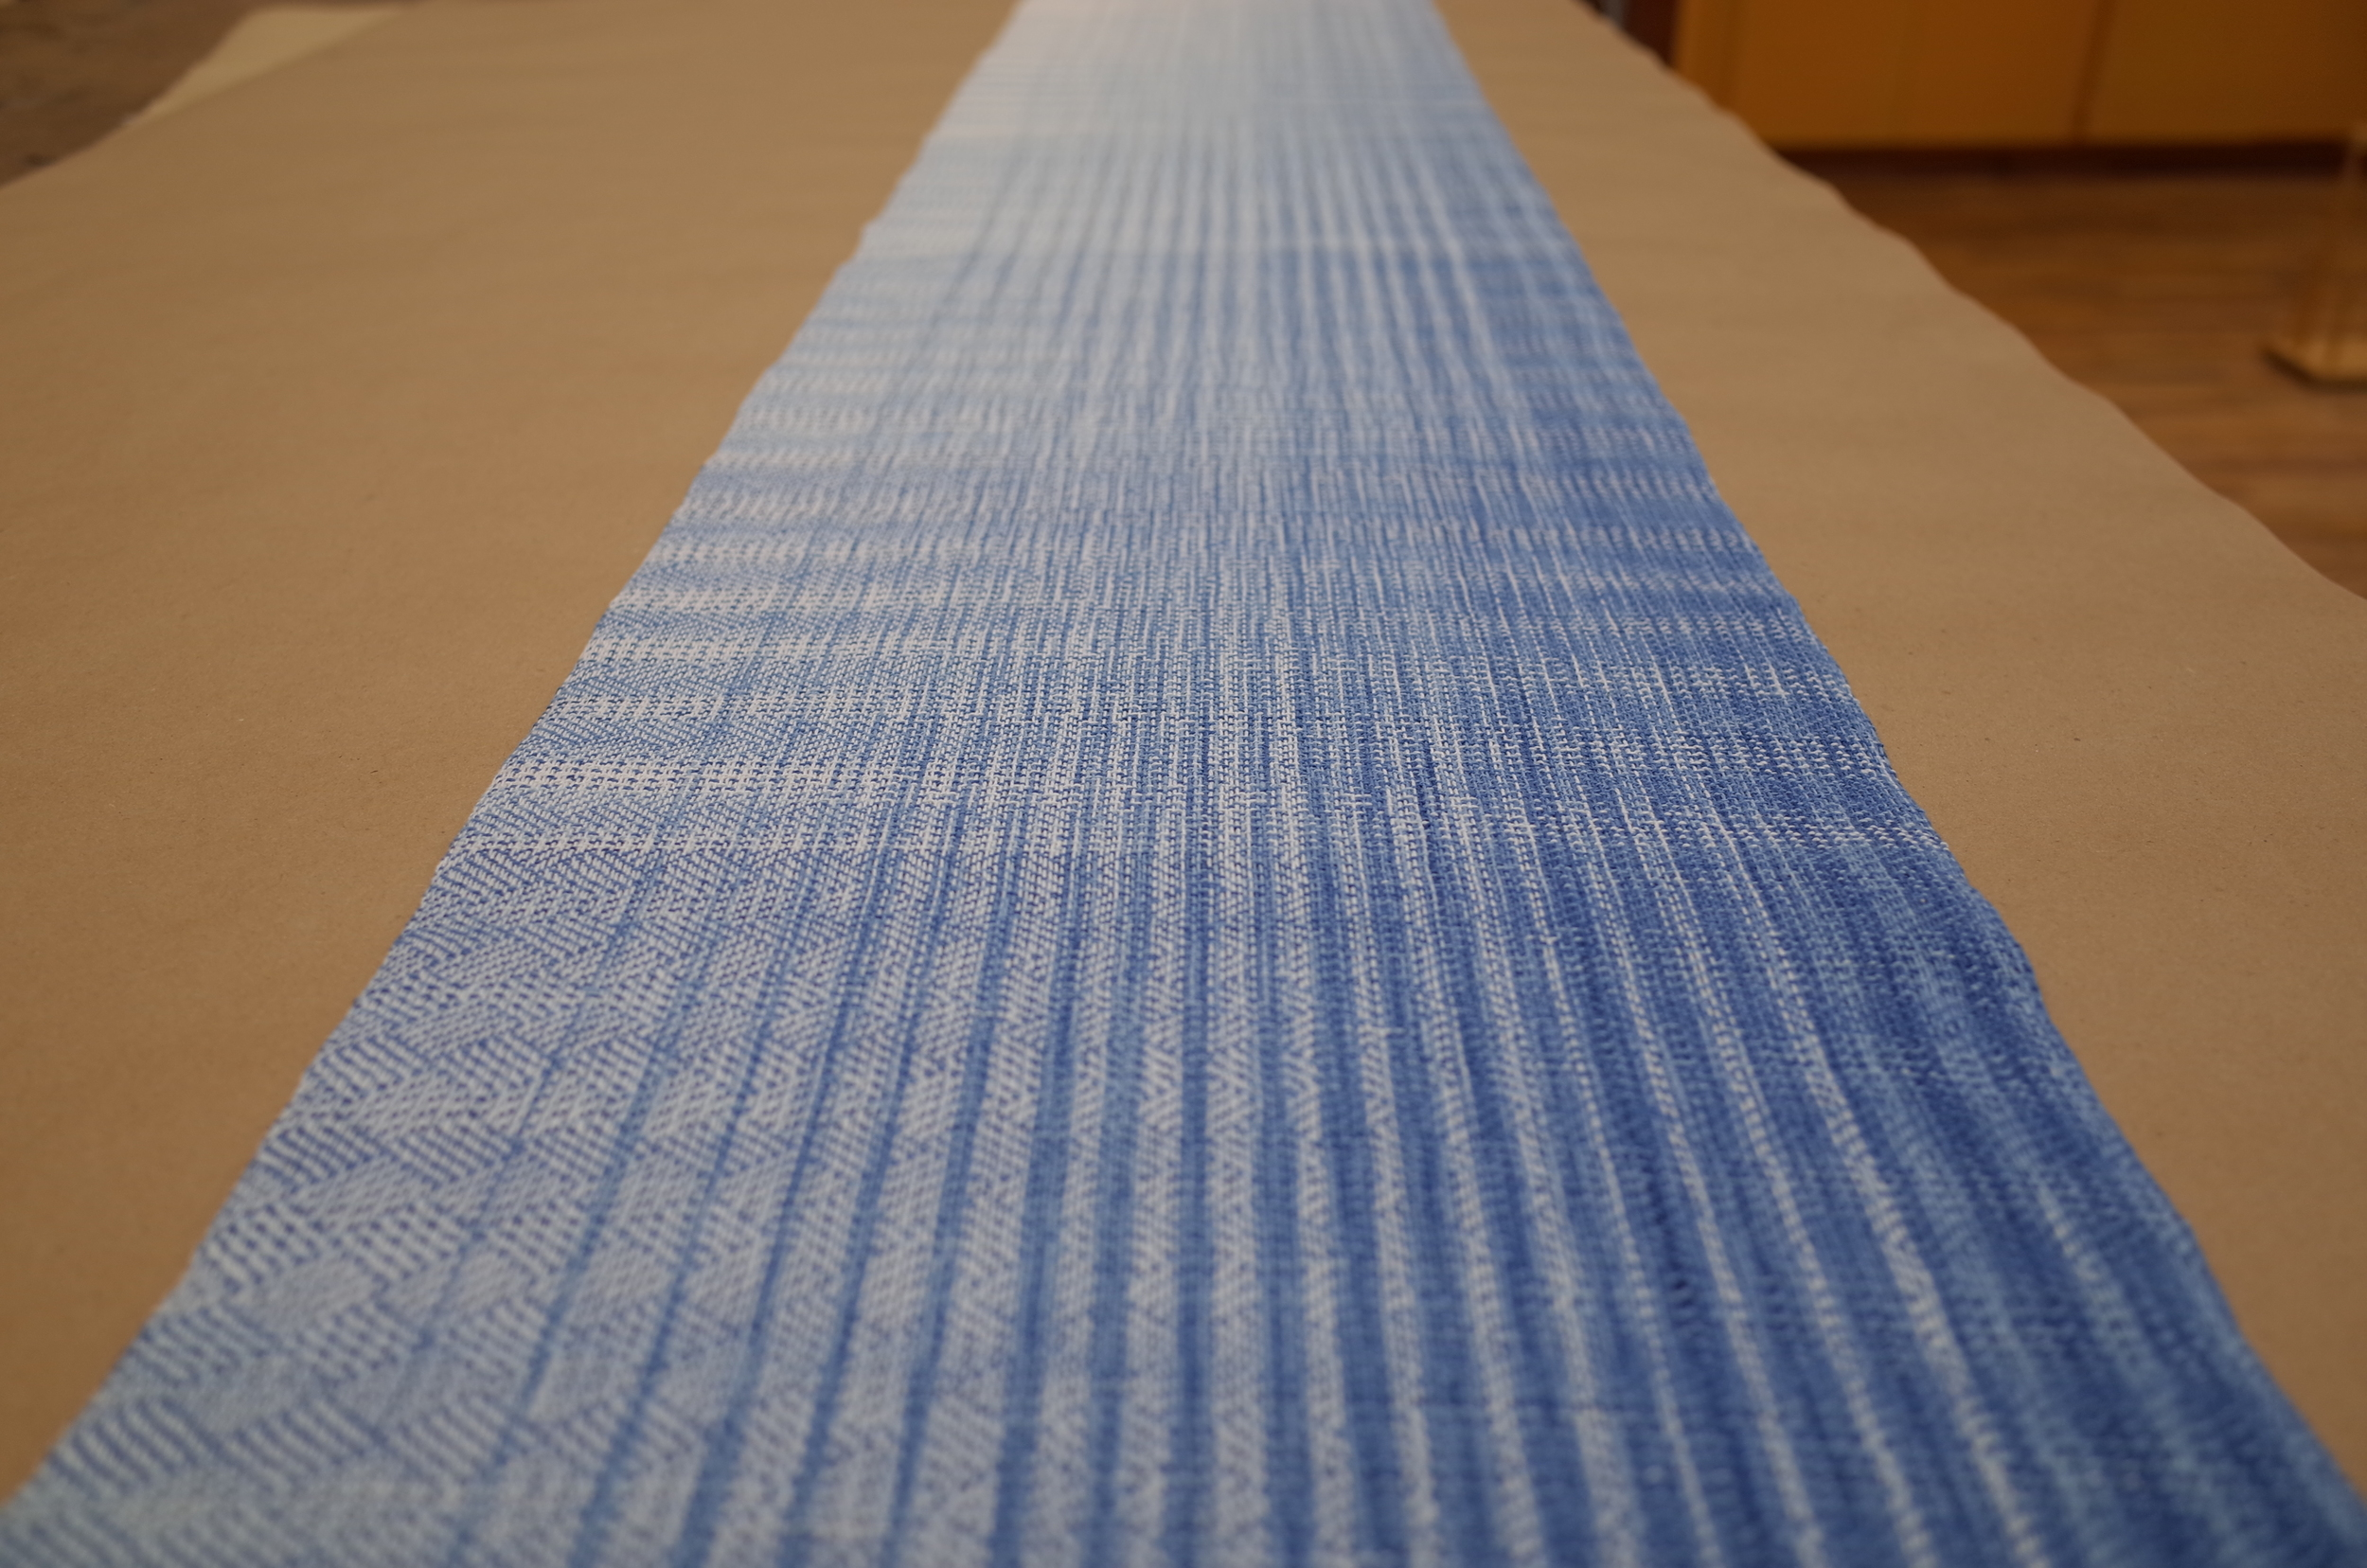 Off the loom and ready for finishing.